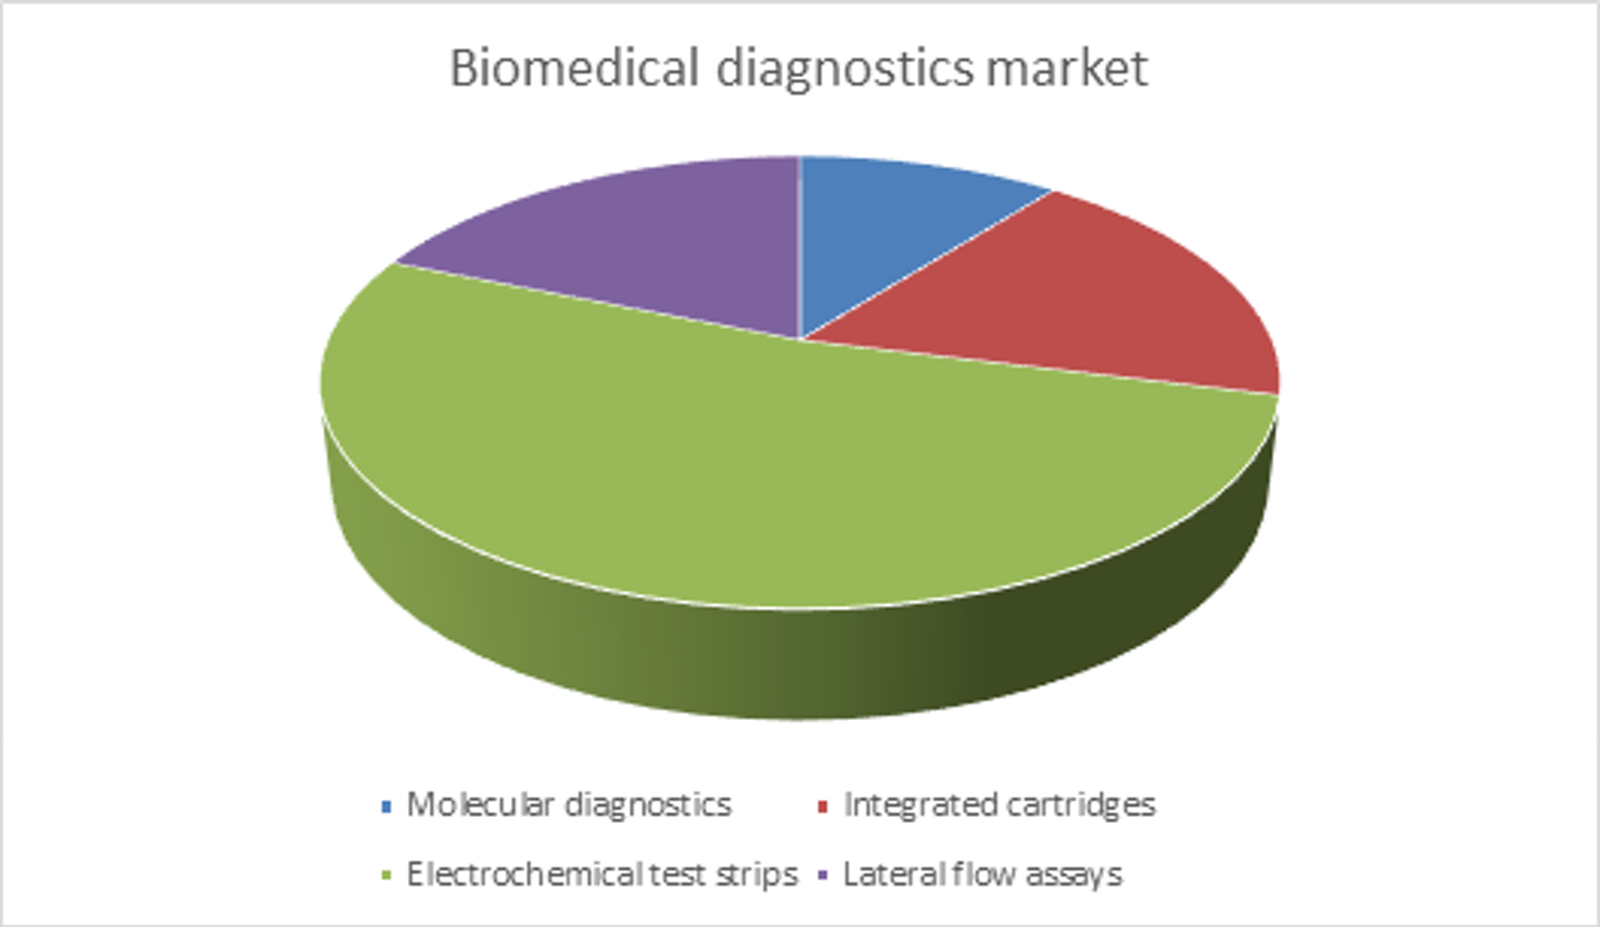 Biomedical Diagnostics at Point-of-Care 2019-2029: Technologies